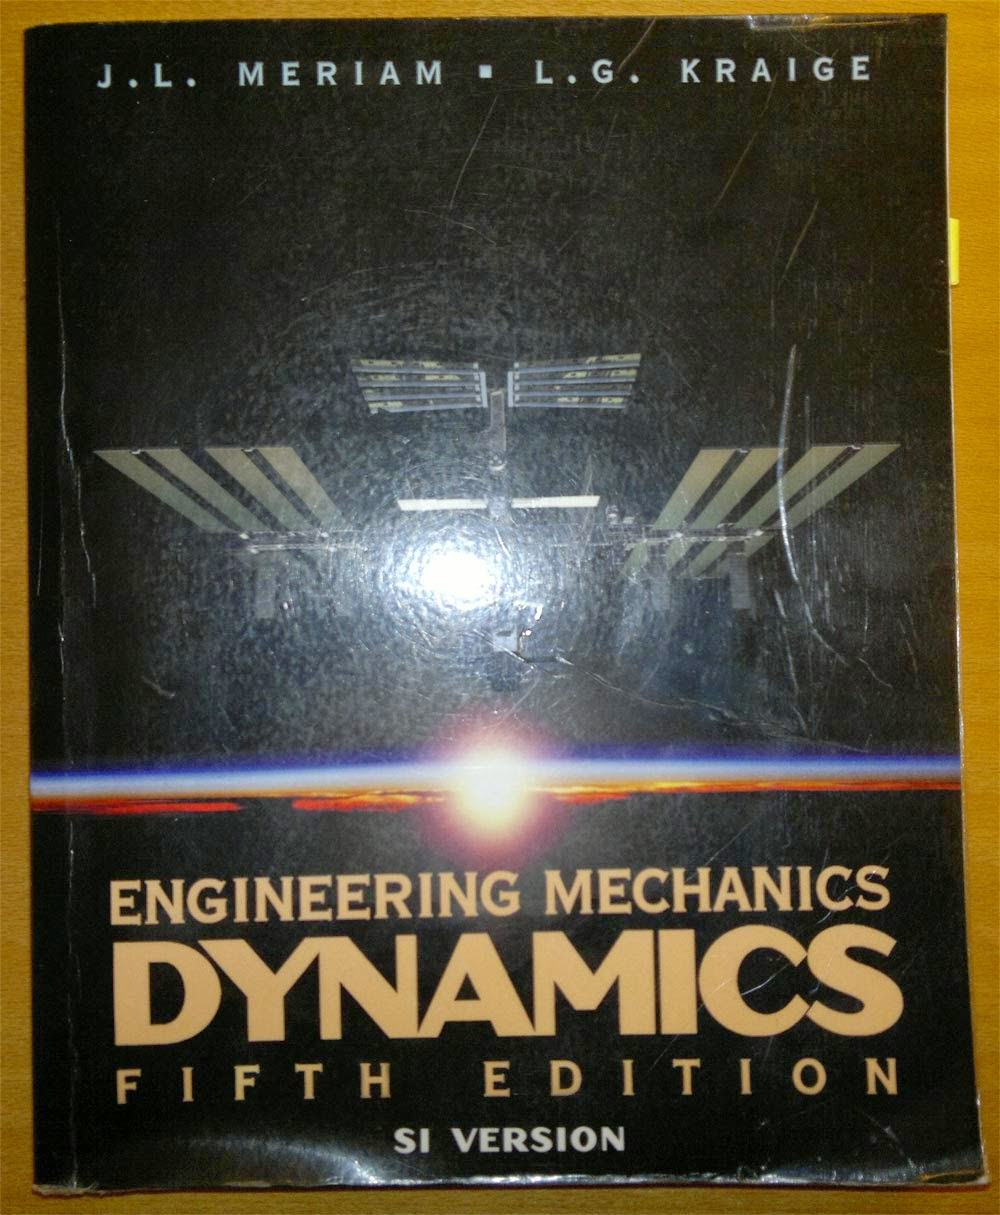 Engineering Mechanics Dynamics Fifth Edition, SI Version